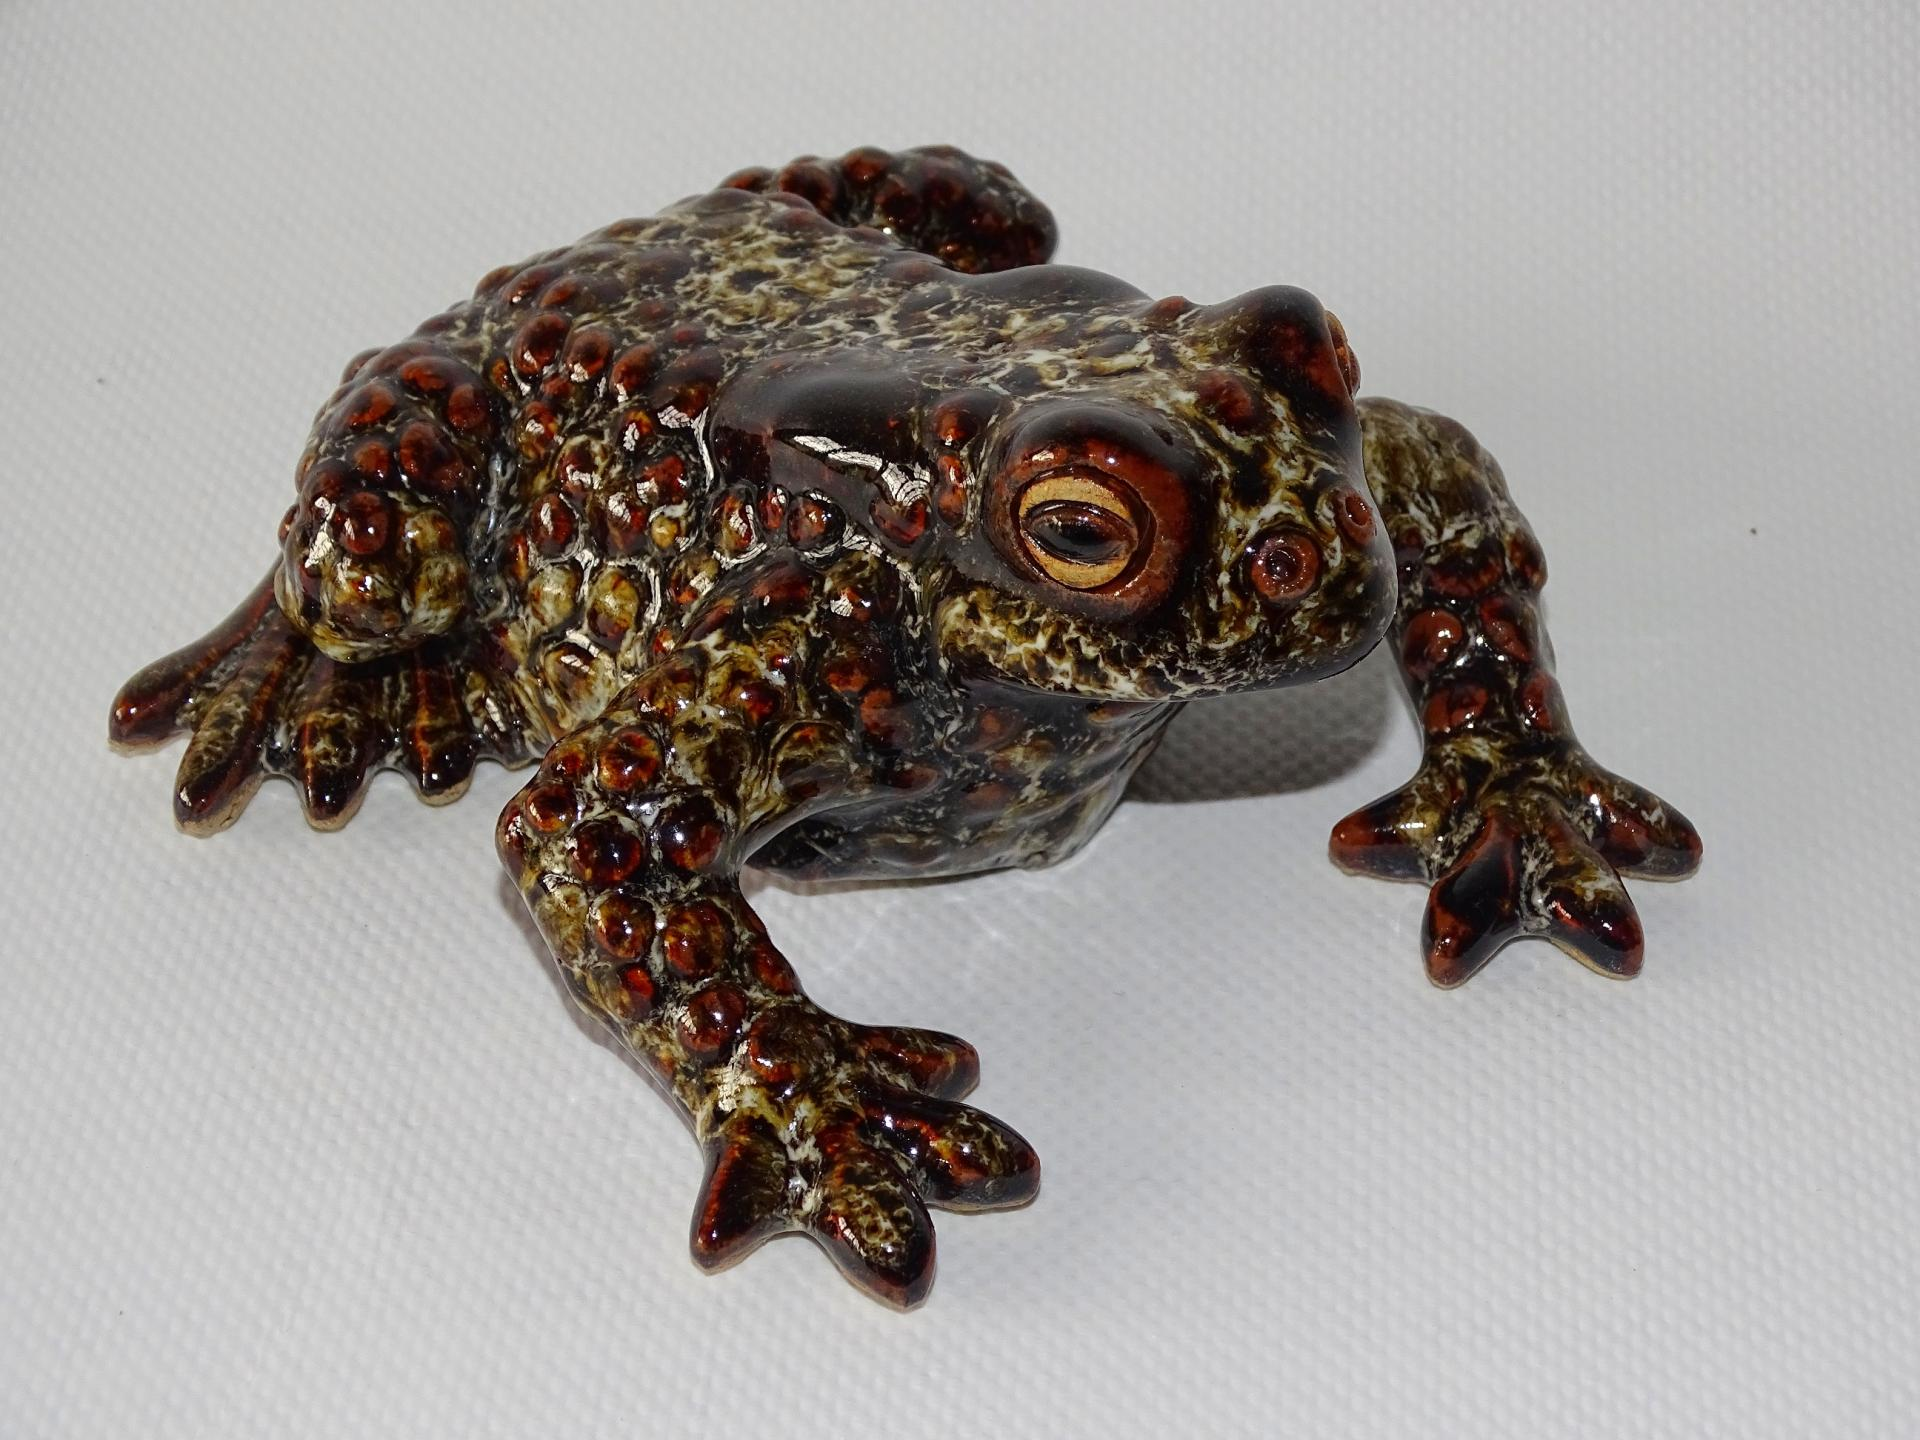 PETIT JEAN PIERRE  CRAPAUD GRES EMAILLE TAILLE REELLE 1